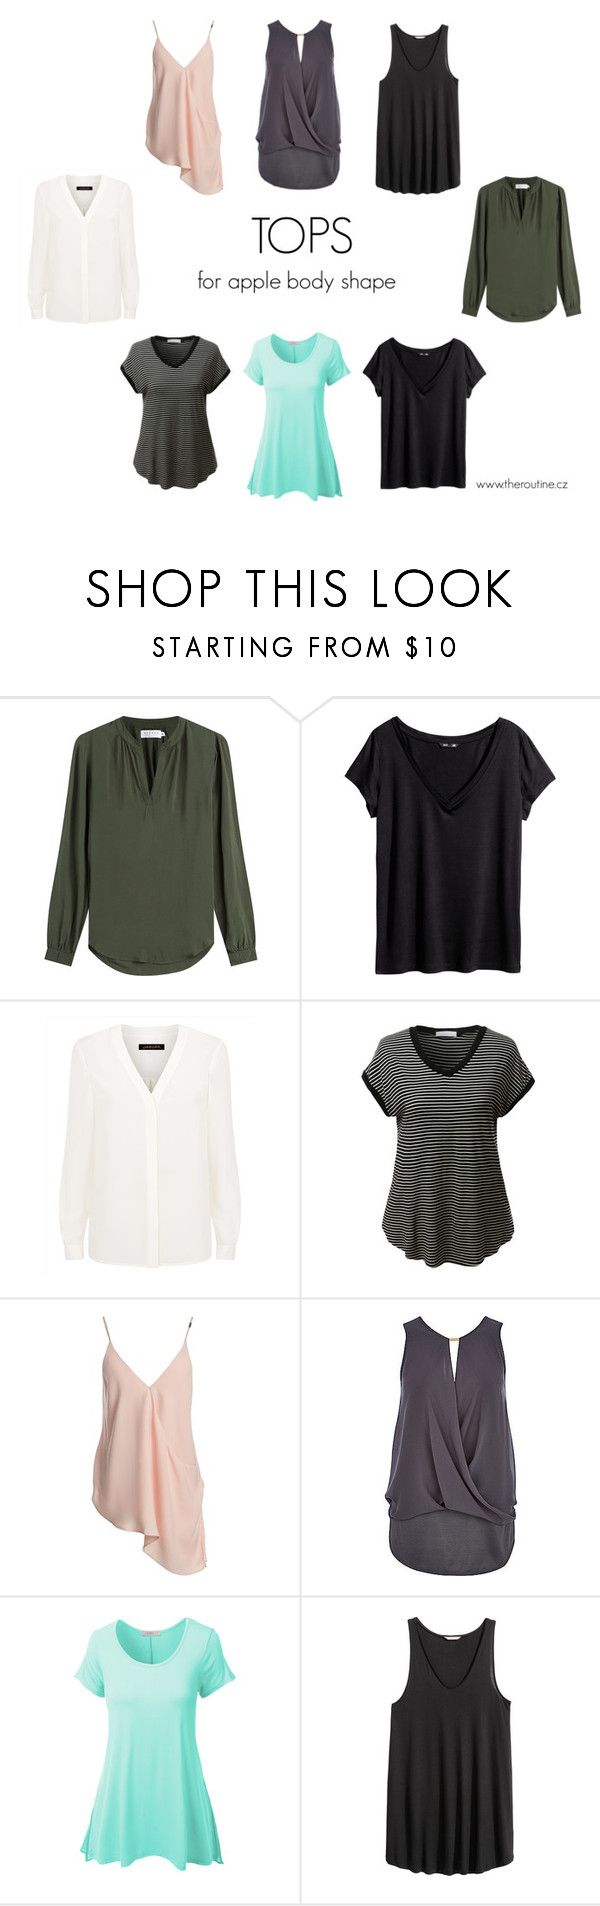 """""""TOPS FOR APPLE BODY SHAPE"""" by kristina-mihalkova ❤ liked on Polyvore featuring Velvet, H&M, Jaeger, LE3NO and Sans Souci"""